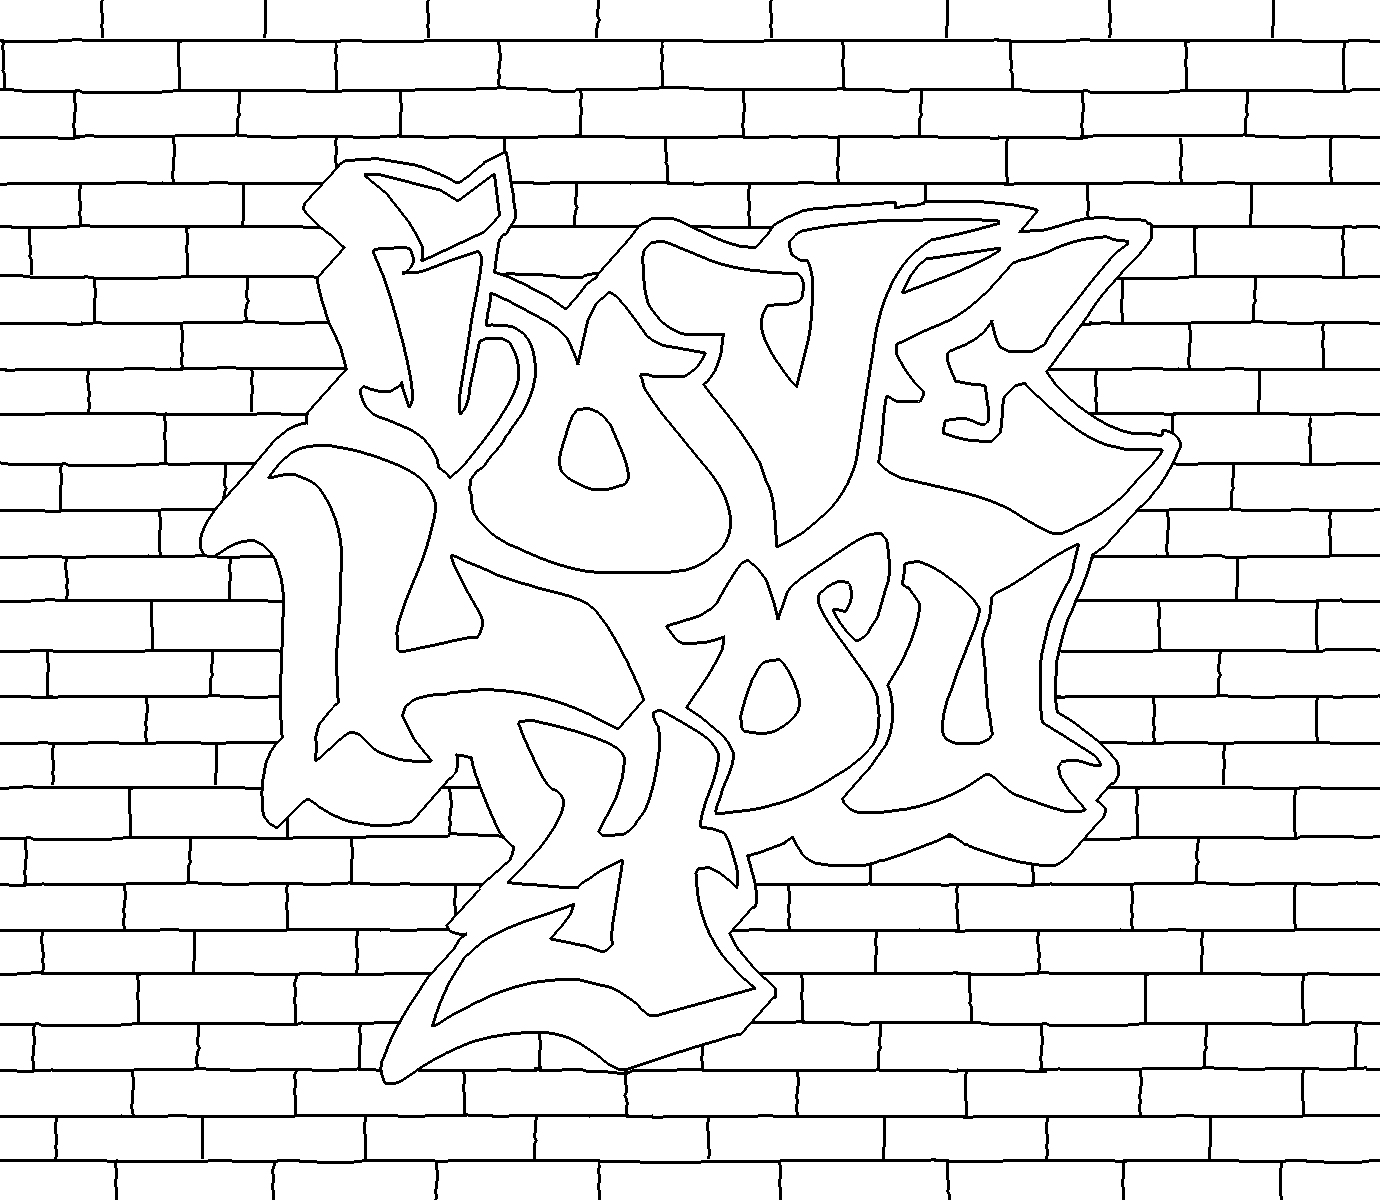 graffiti coloring pages graffiti quilting coloring book downloadable karlee porter graffiti coloring pages